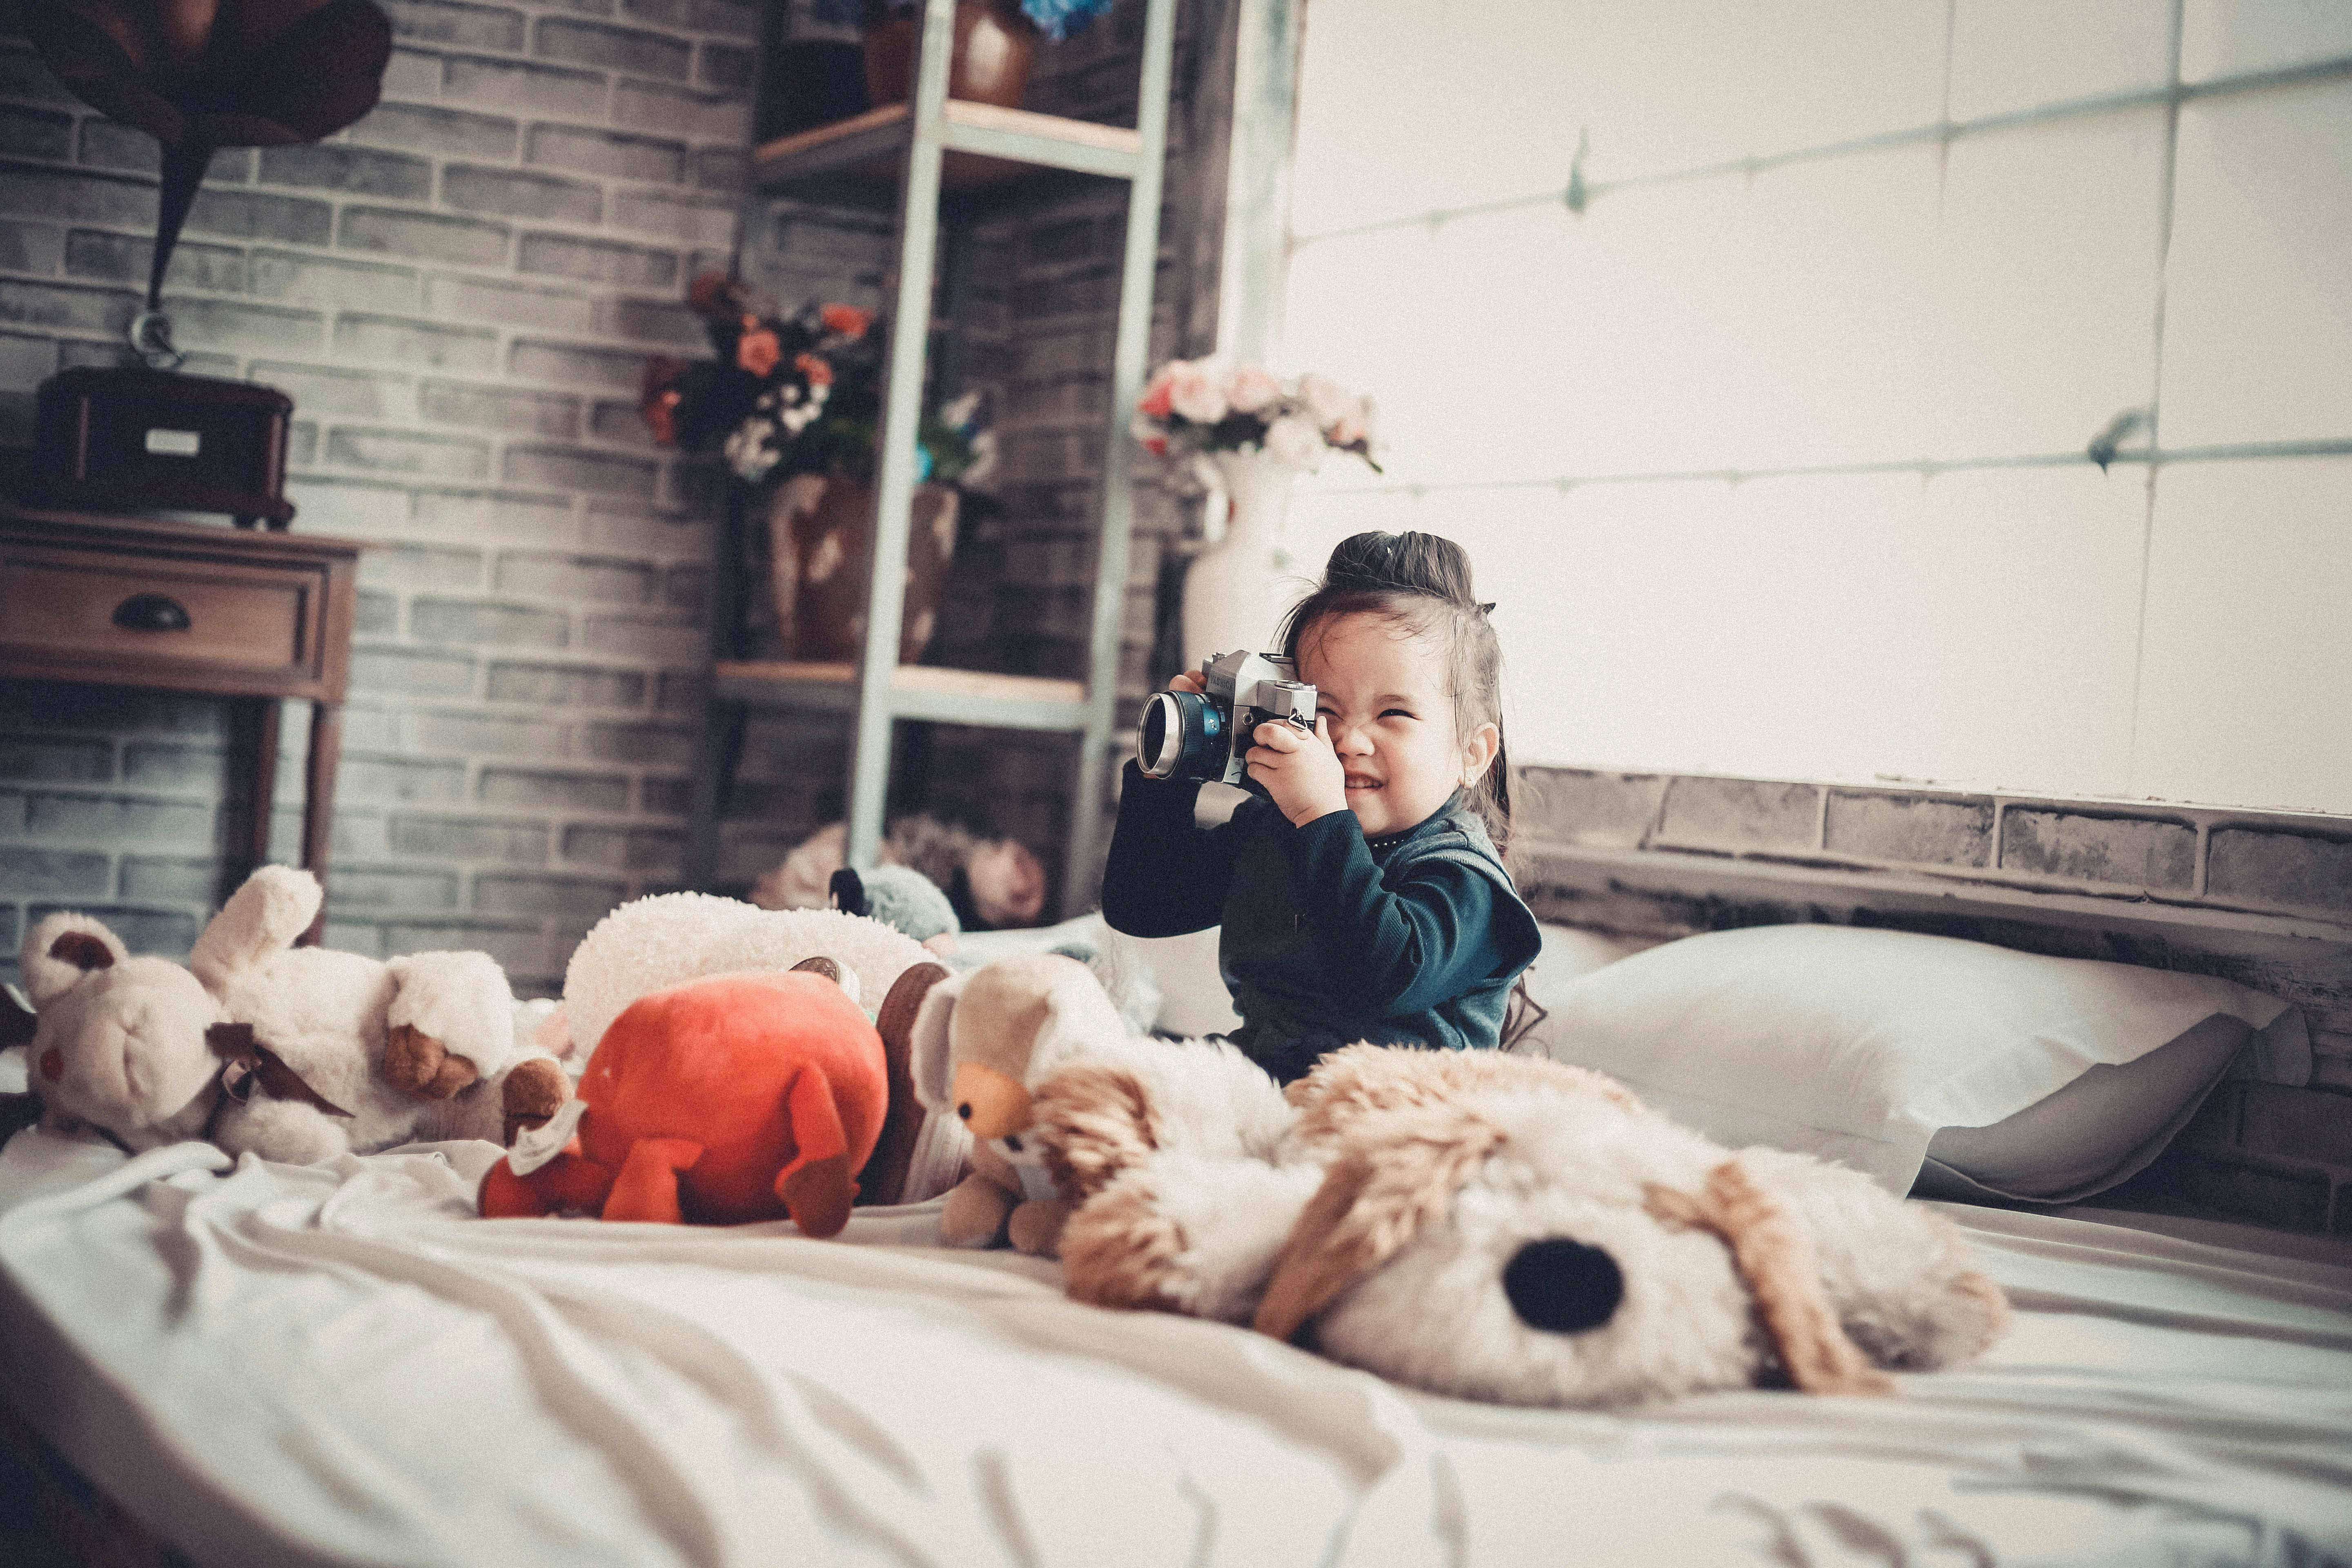 Child play with camera, pillow, joy, toys, play